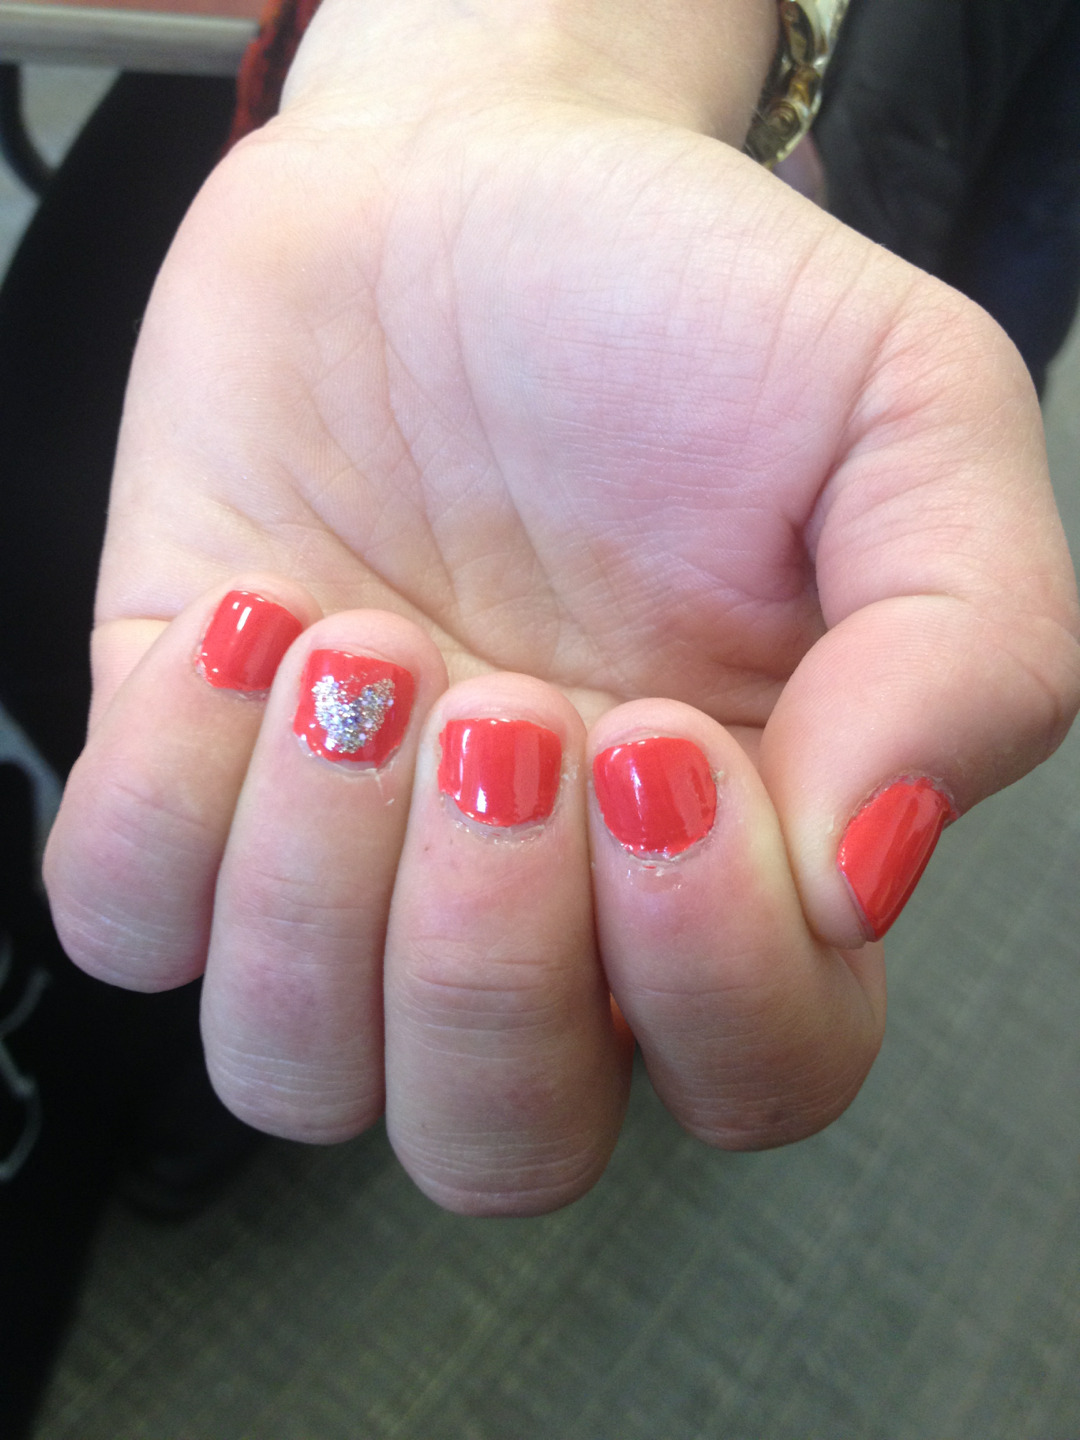 @Natty_G6's Valentines Day nails